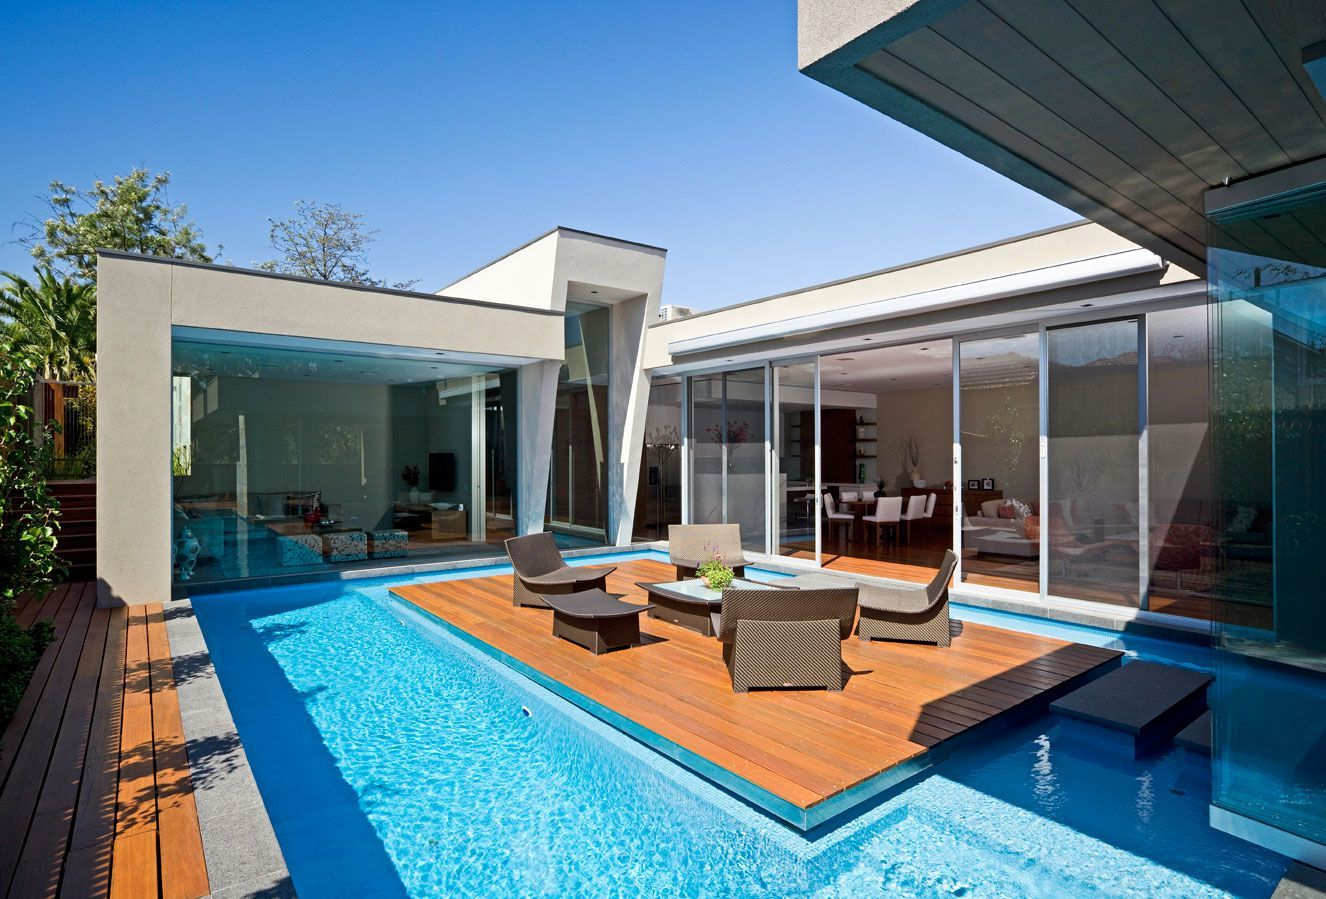 Canterbury-05 | Swimming pools | Pinterest | Canterbury on modern house design, east coast house design, american foursquare house design, england house design, samurai house design, east hampton house design, bridge house design, balmoral house design, manchester house design, birmingham house design,